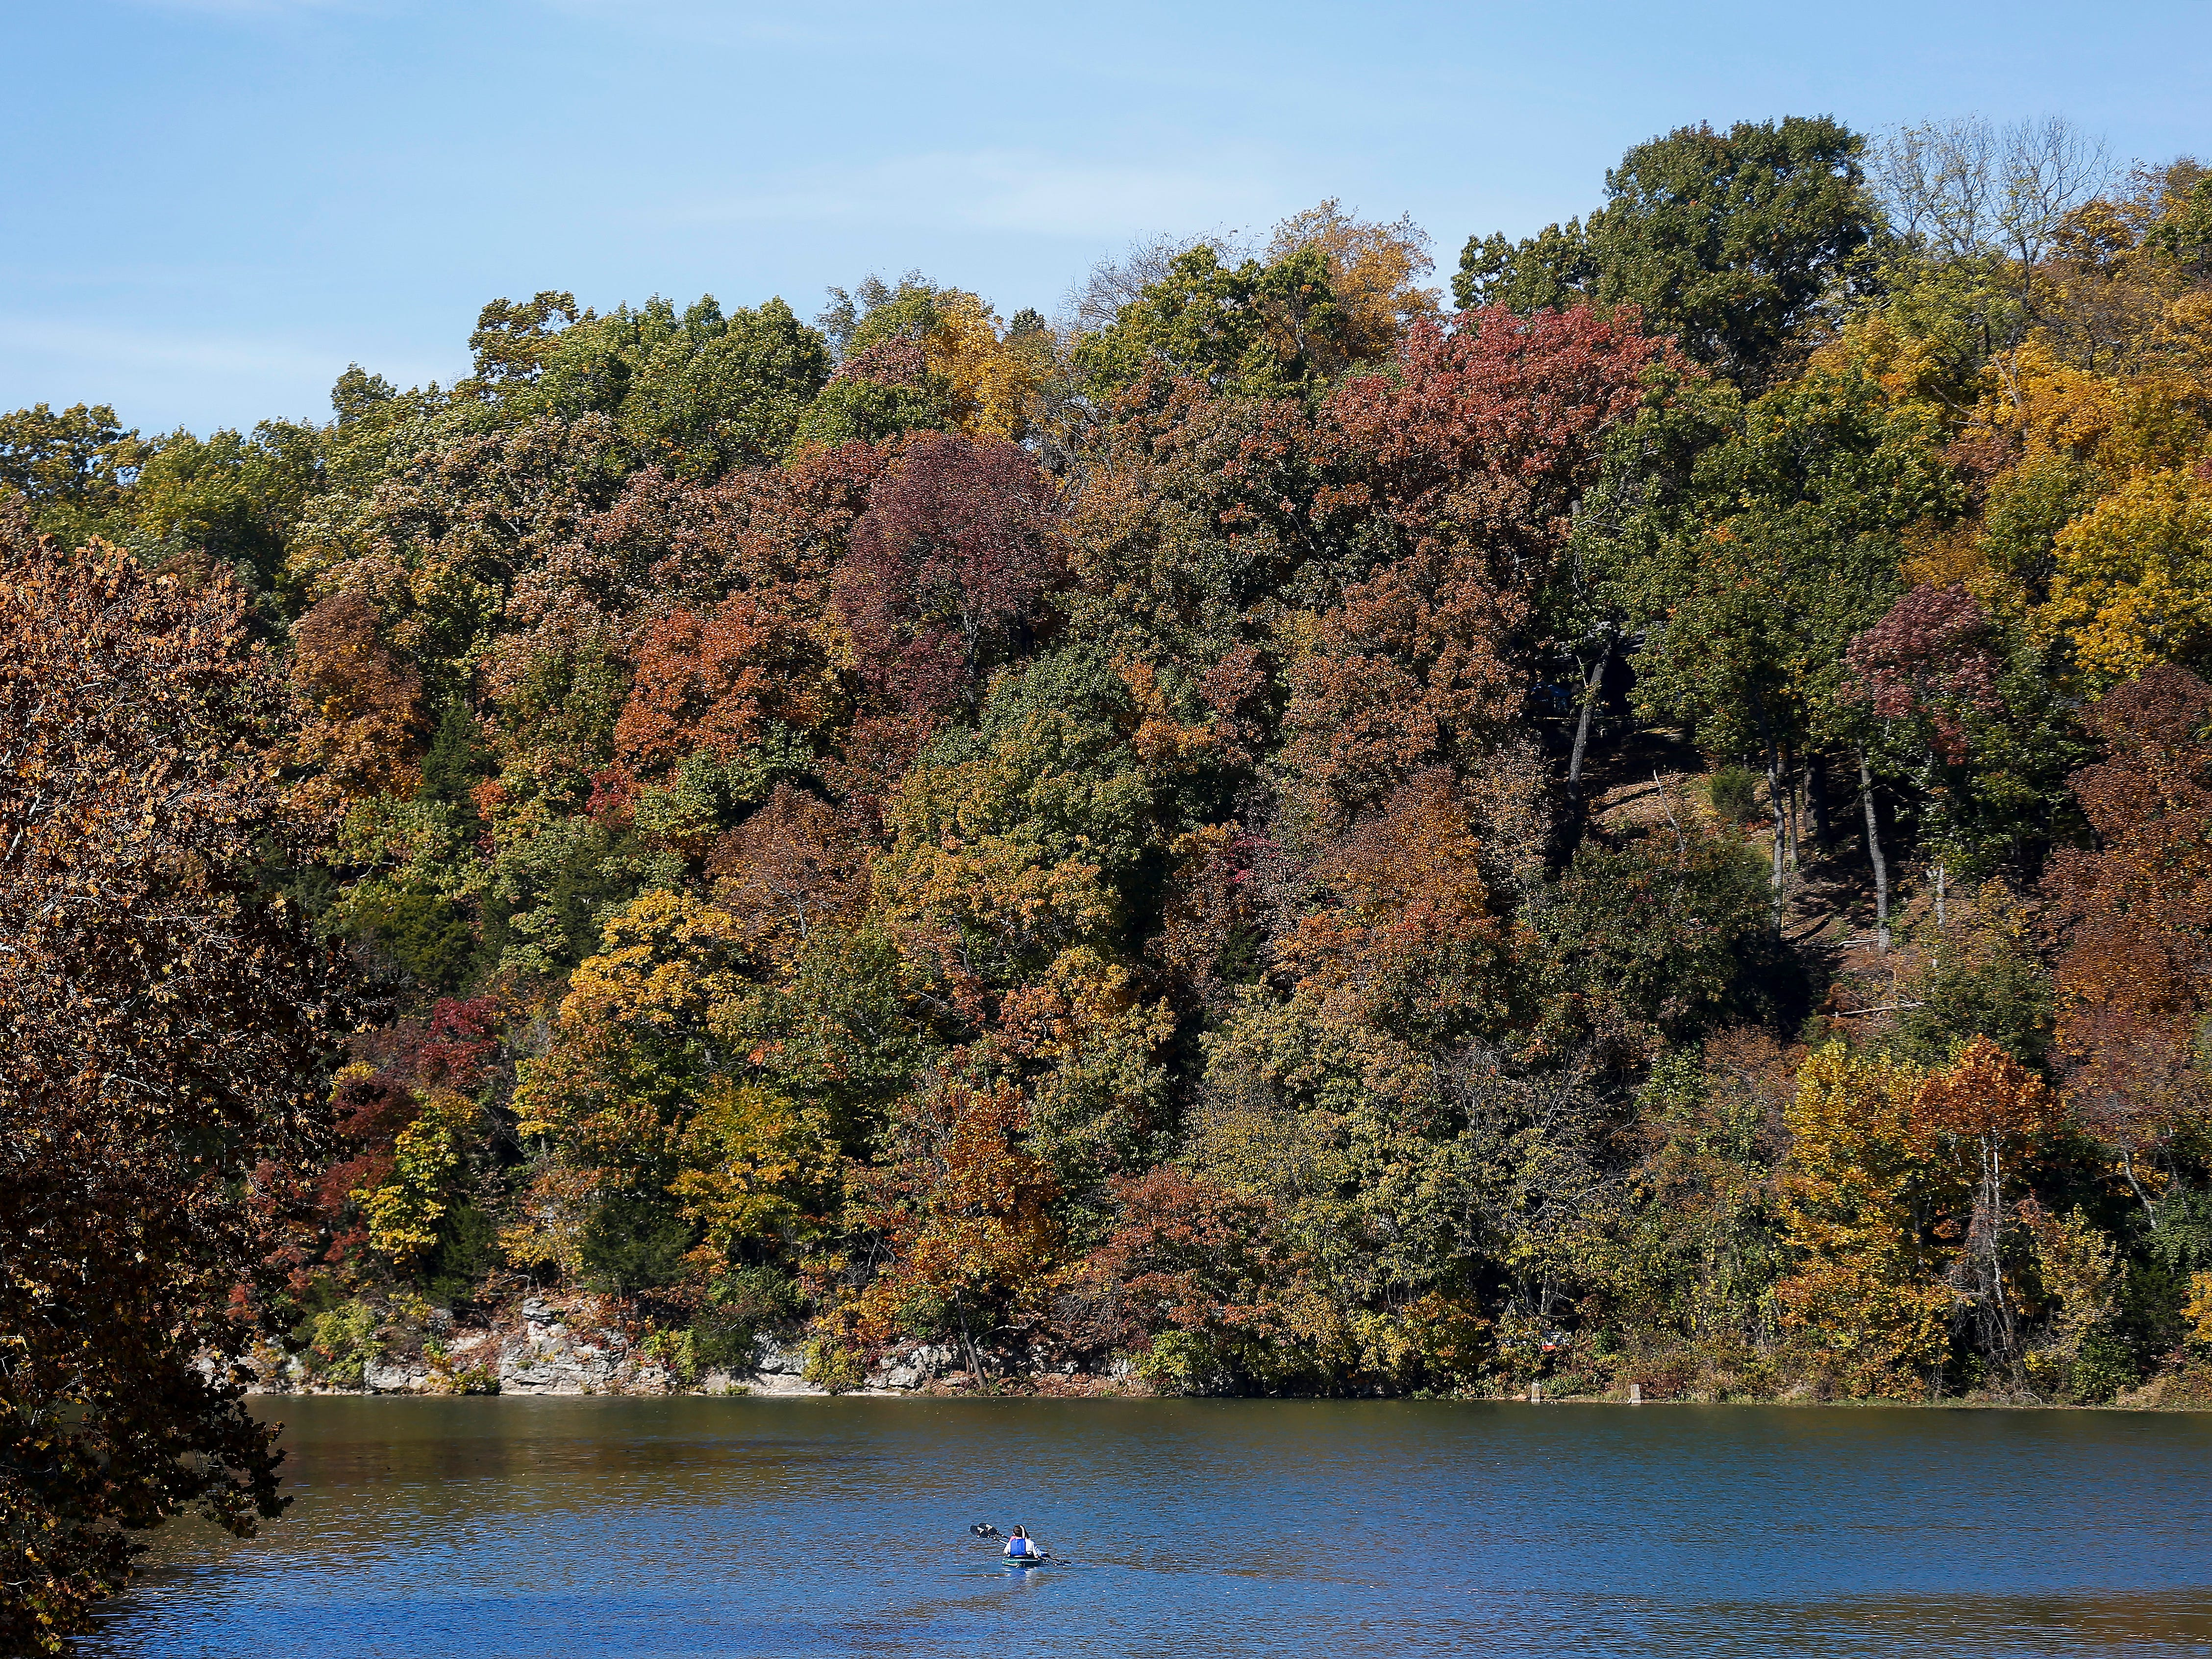 With some muted fall trees as a backdrop, a couple paddles down the James River on Monday, Oct. 29, 2018.